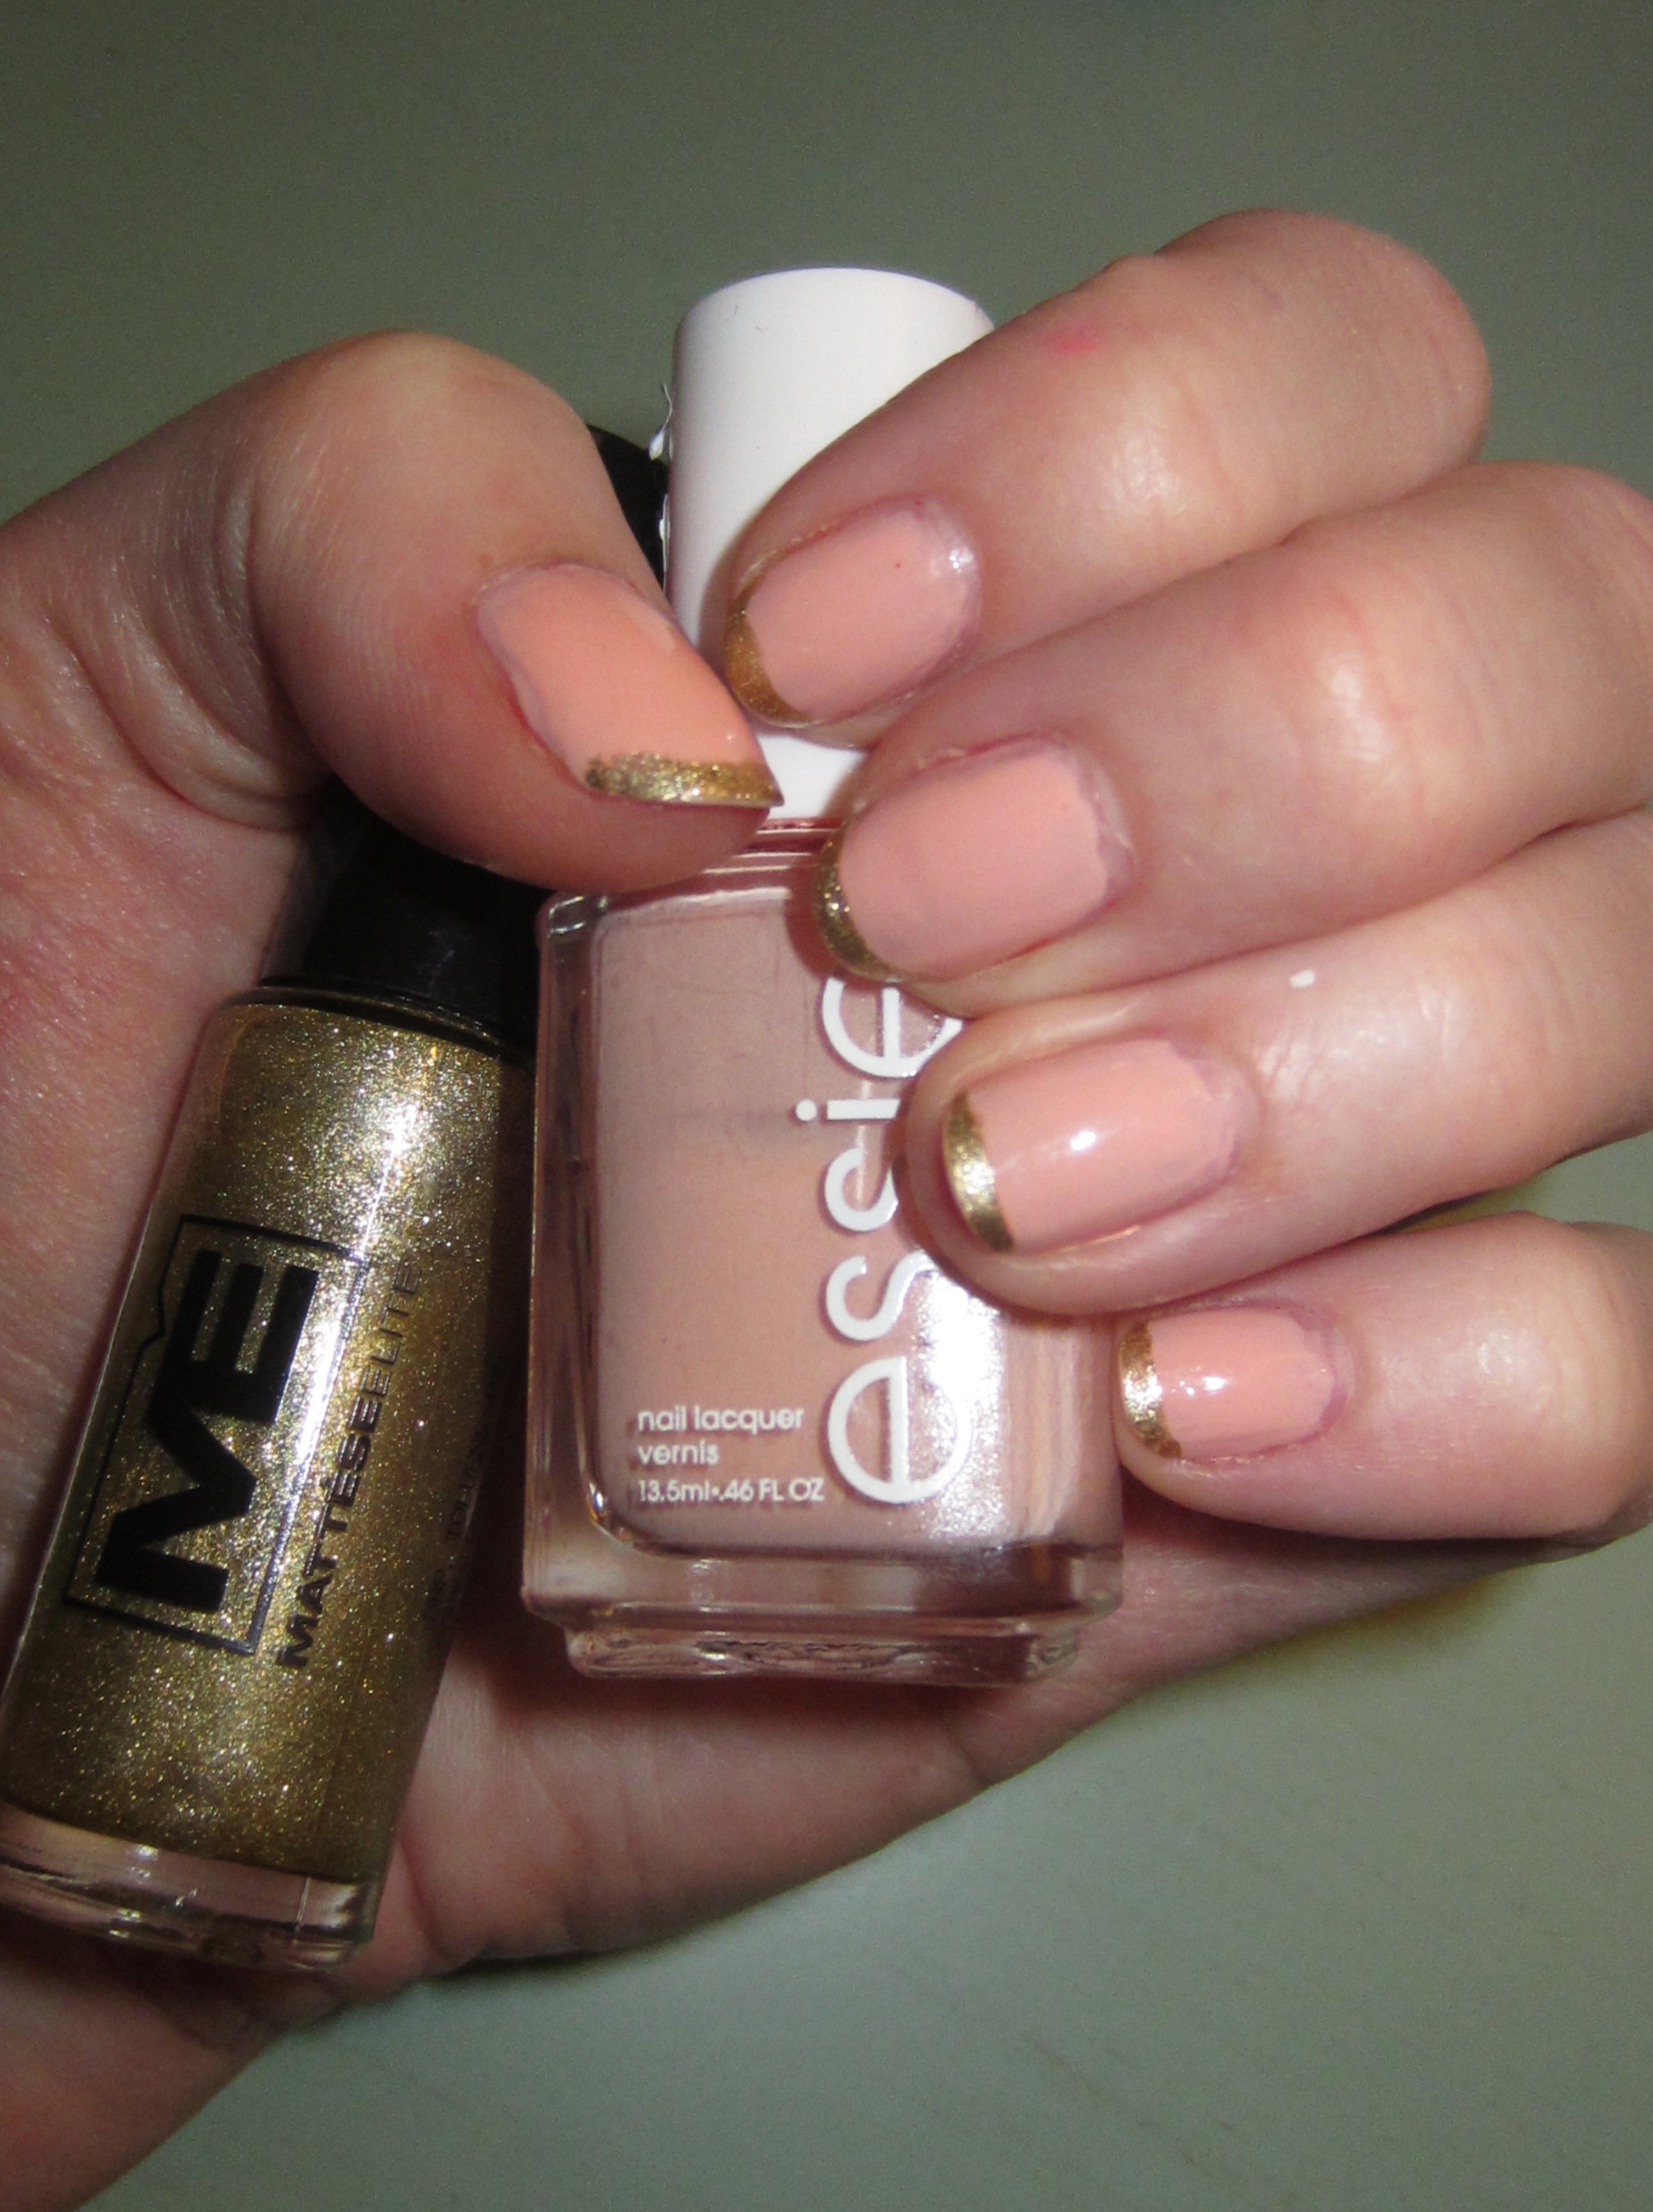 How to paint french nails perfectly